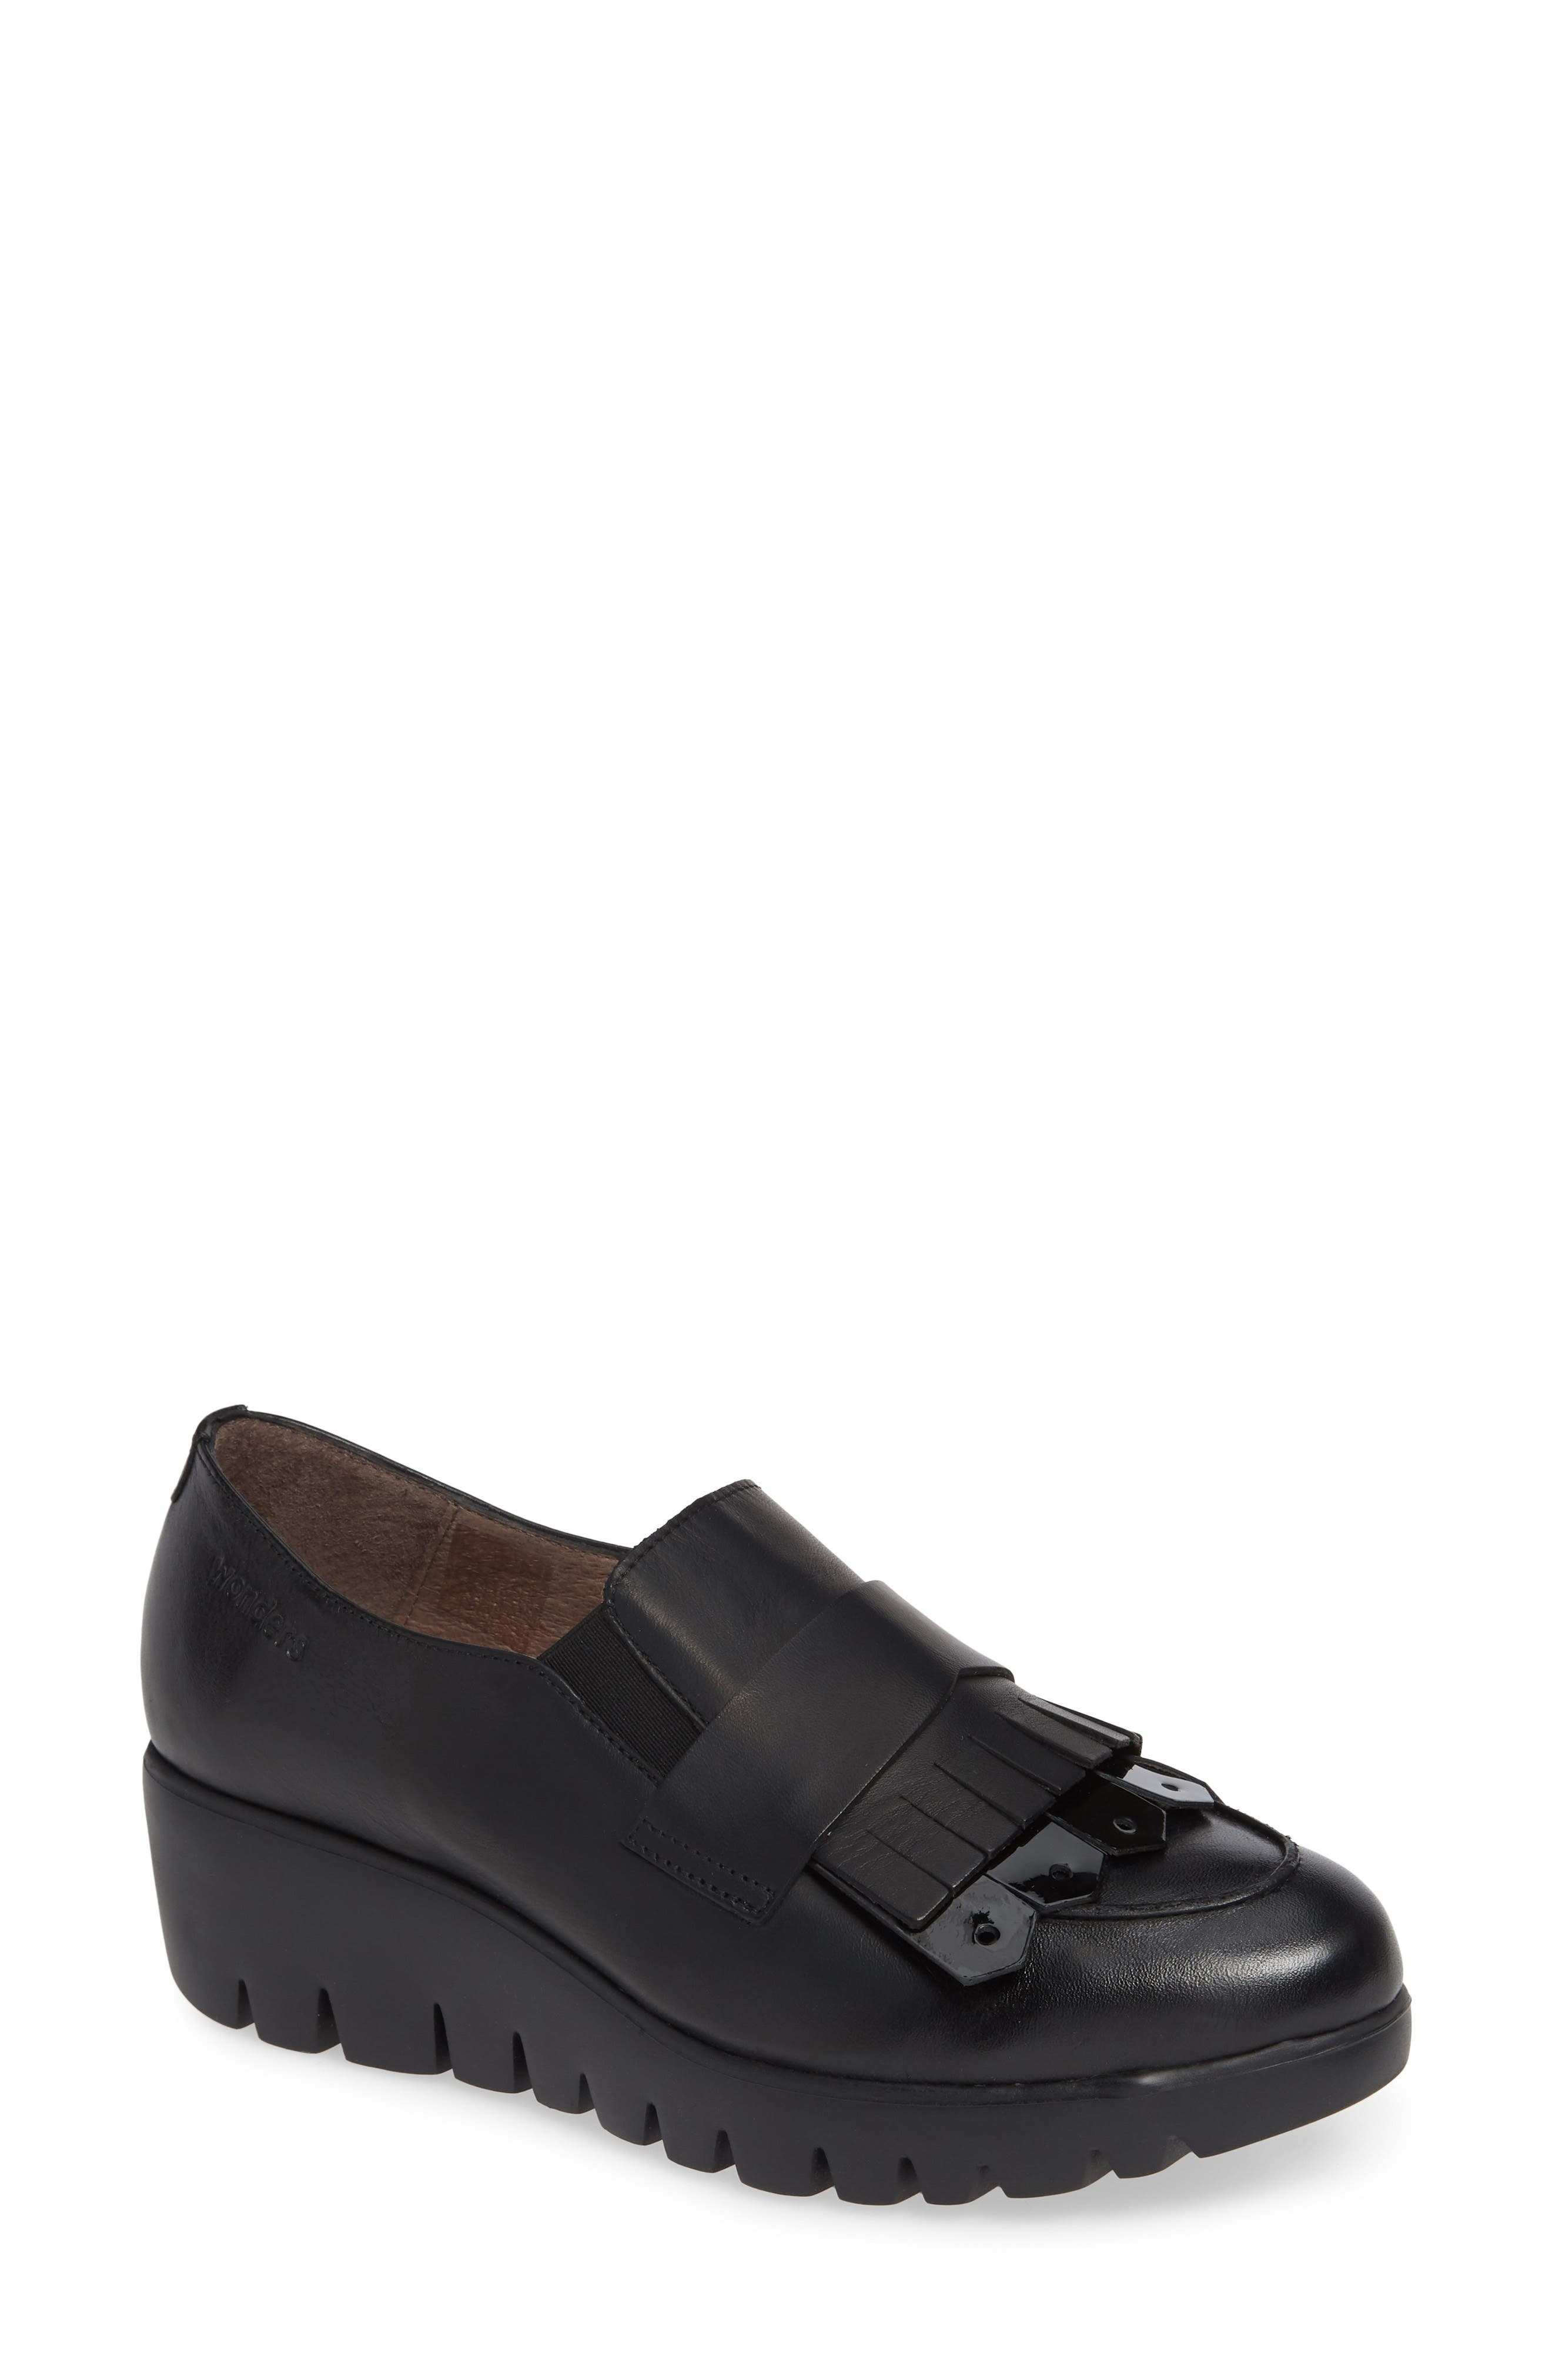 Kiltie Wedge Loafer,                         Main,                         color, BLACK PATENT AND LEATHER